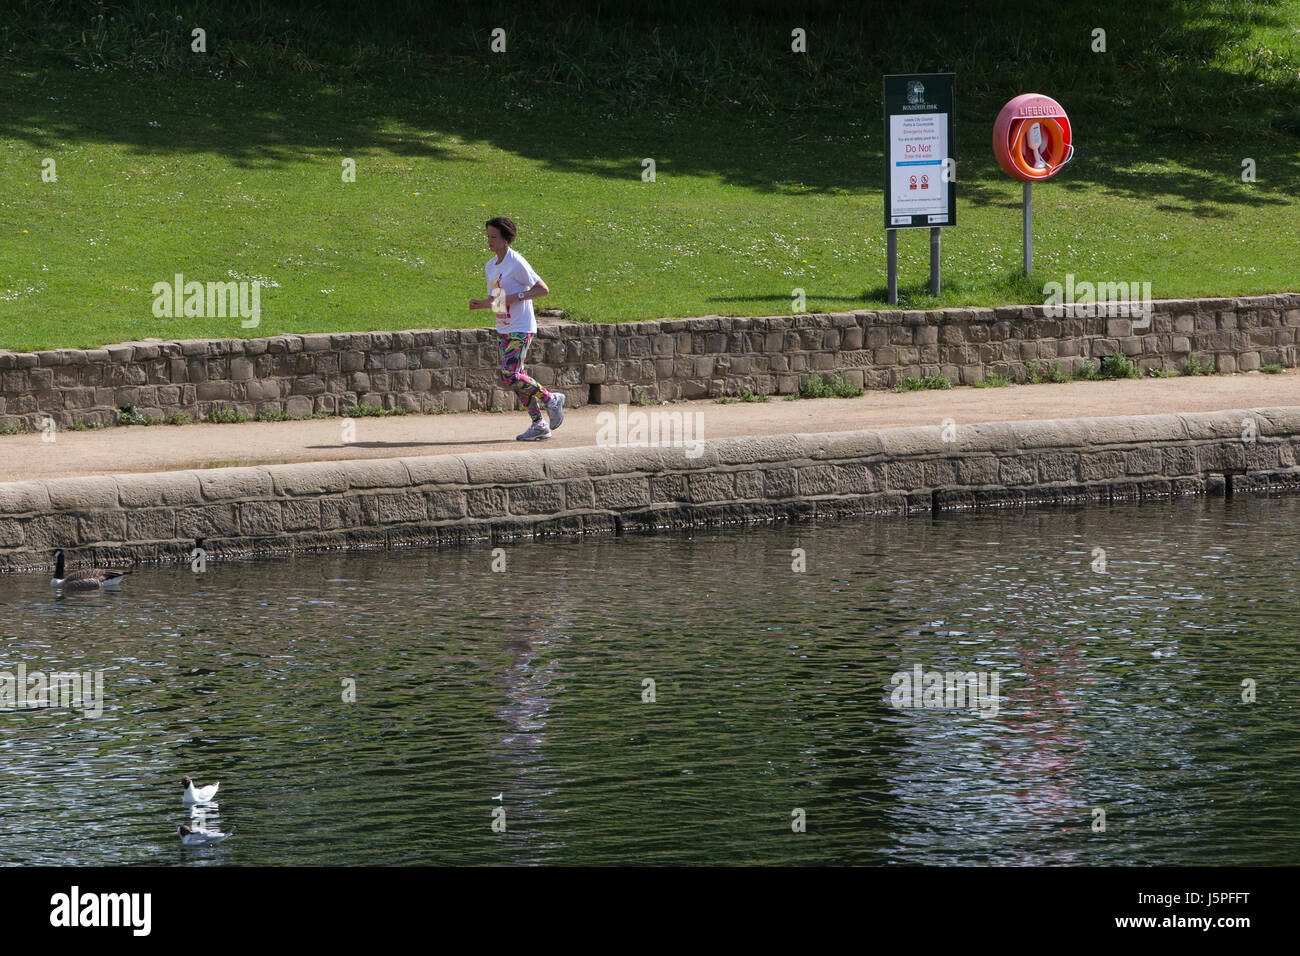 Leeds, UK. 18th May, 2017. A lady enjoying a morning jog around Roundhay Park in Leeds on 18 May 2017.  A bright - Stock Image